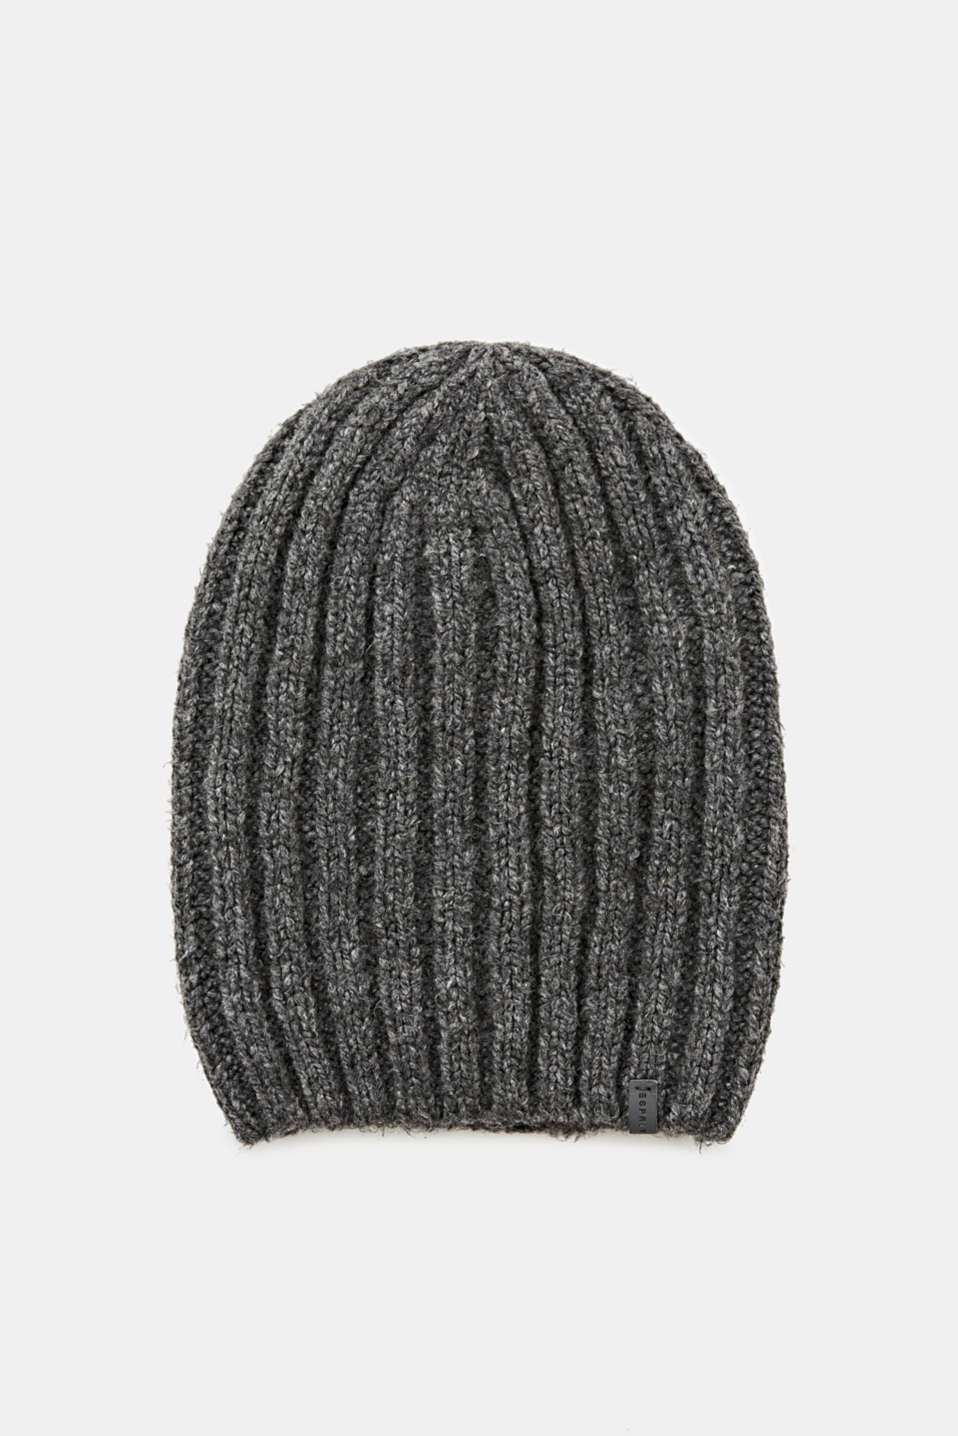 Esprit - Beanie with a wide, ribbed texture